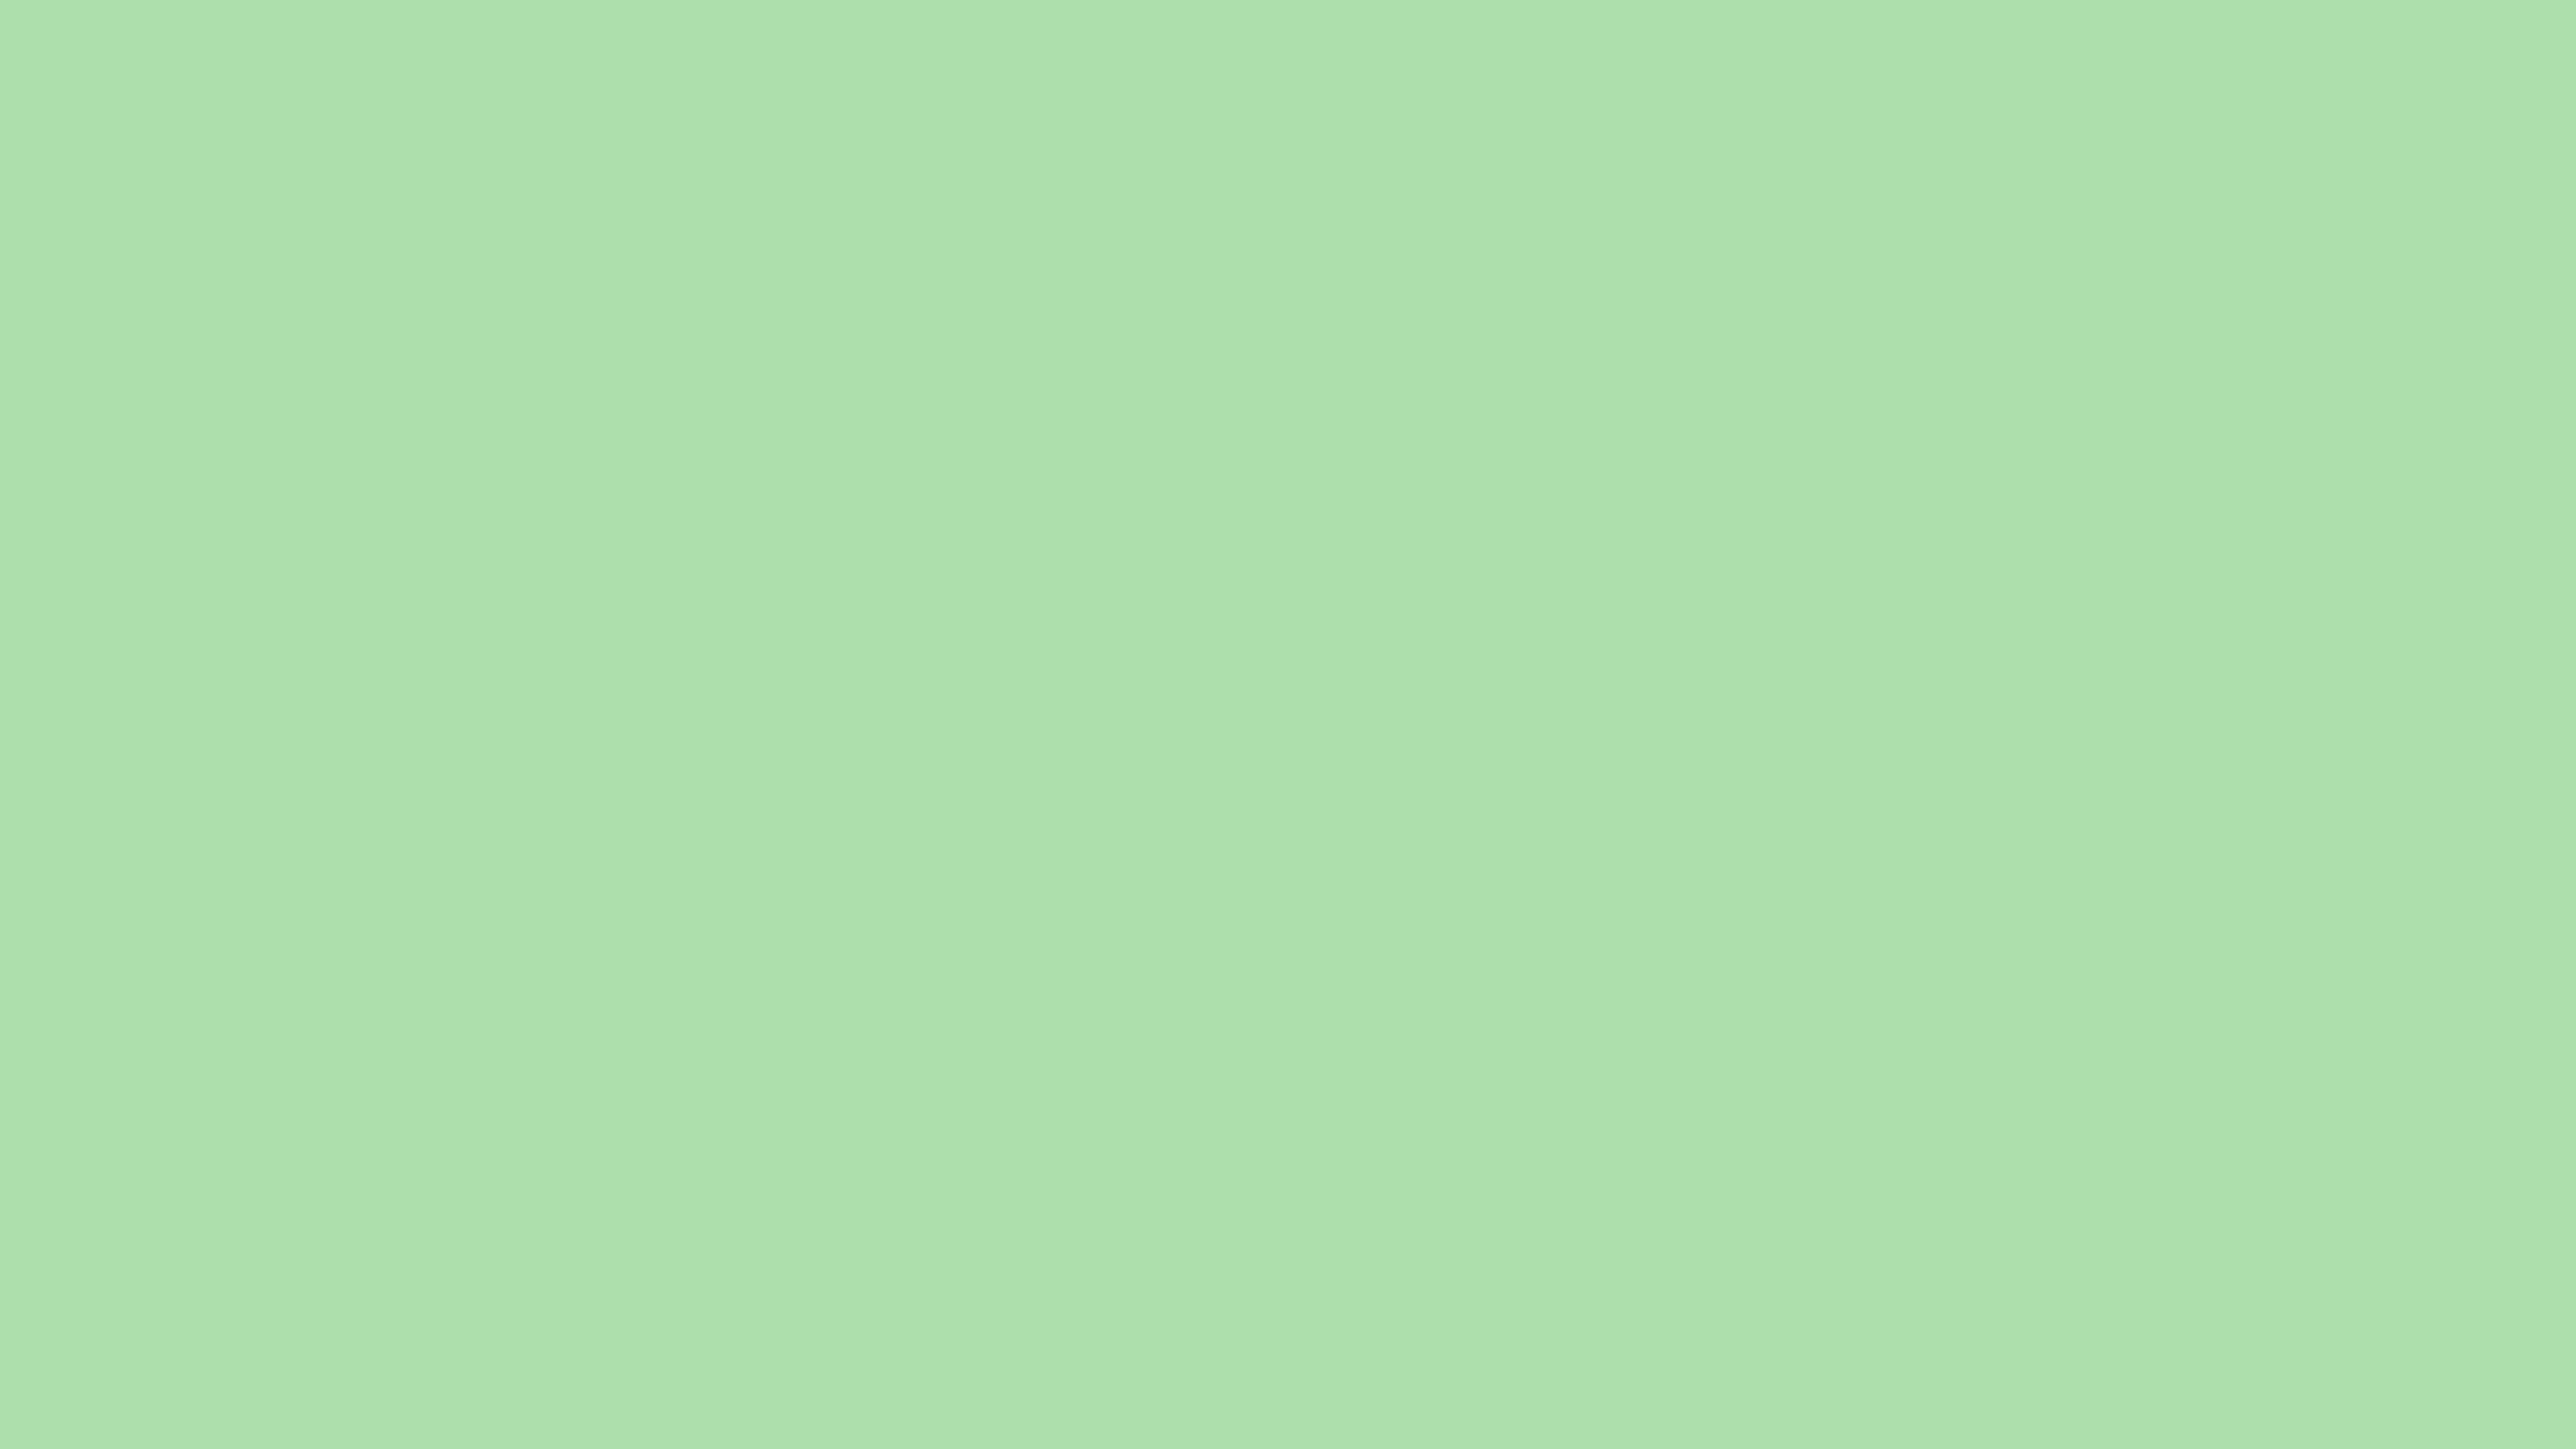 5120x2880 Light Moss Green Solid Color Background